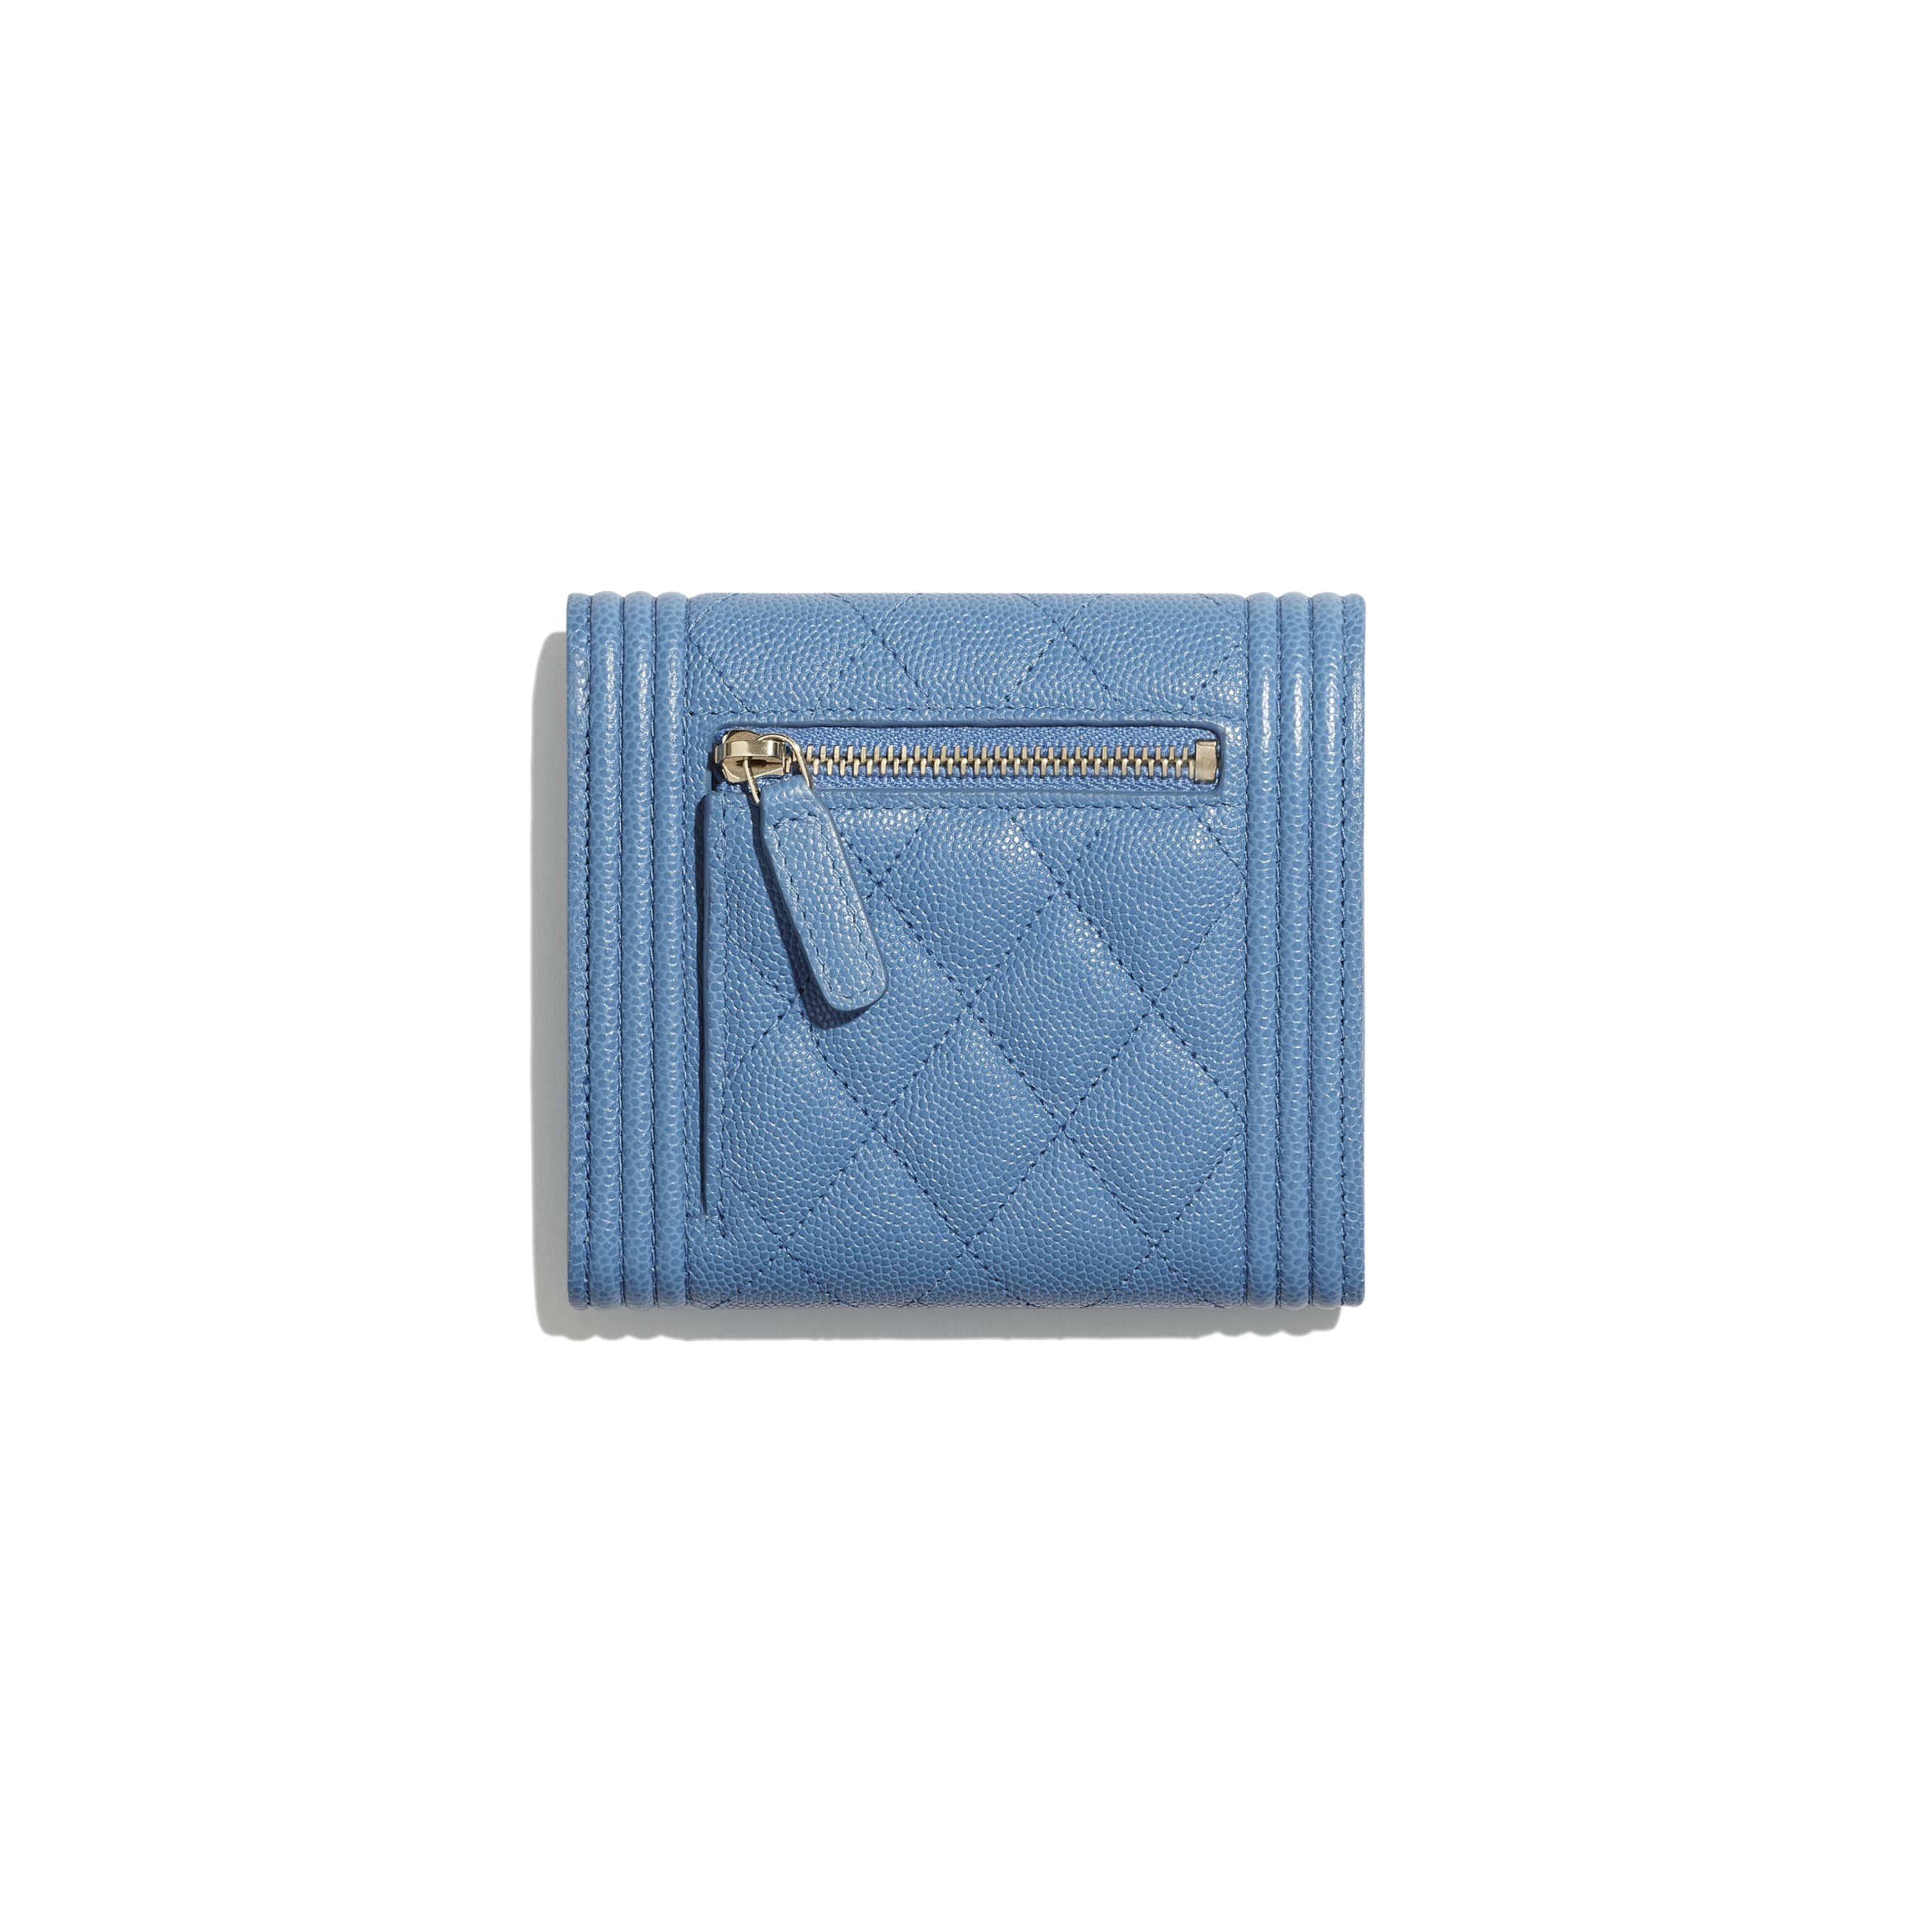 BOY CHANEL Small Flap Wallet - Blue - Grained Calfskin & Gold-Tone Metal - CHANEL - Alternative view - see standard sized version